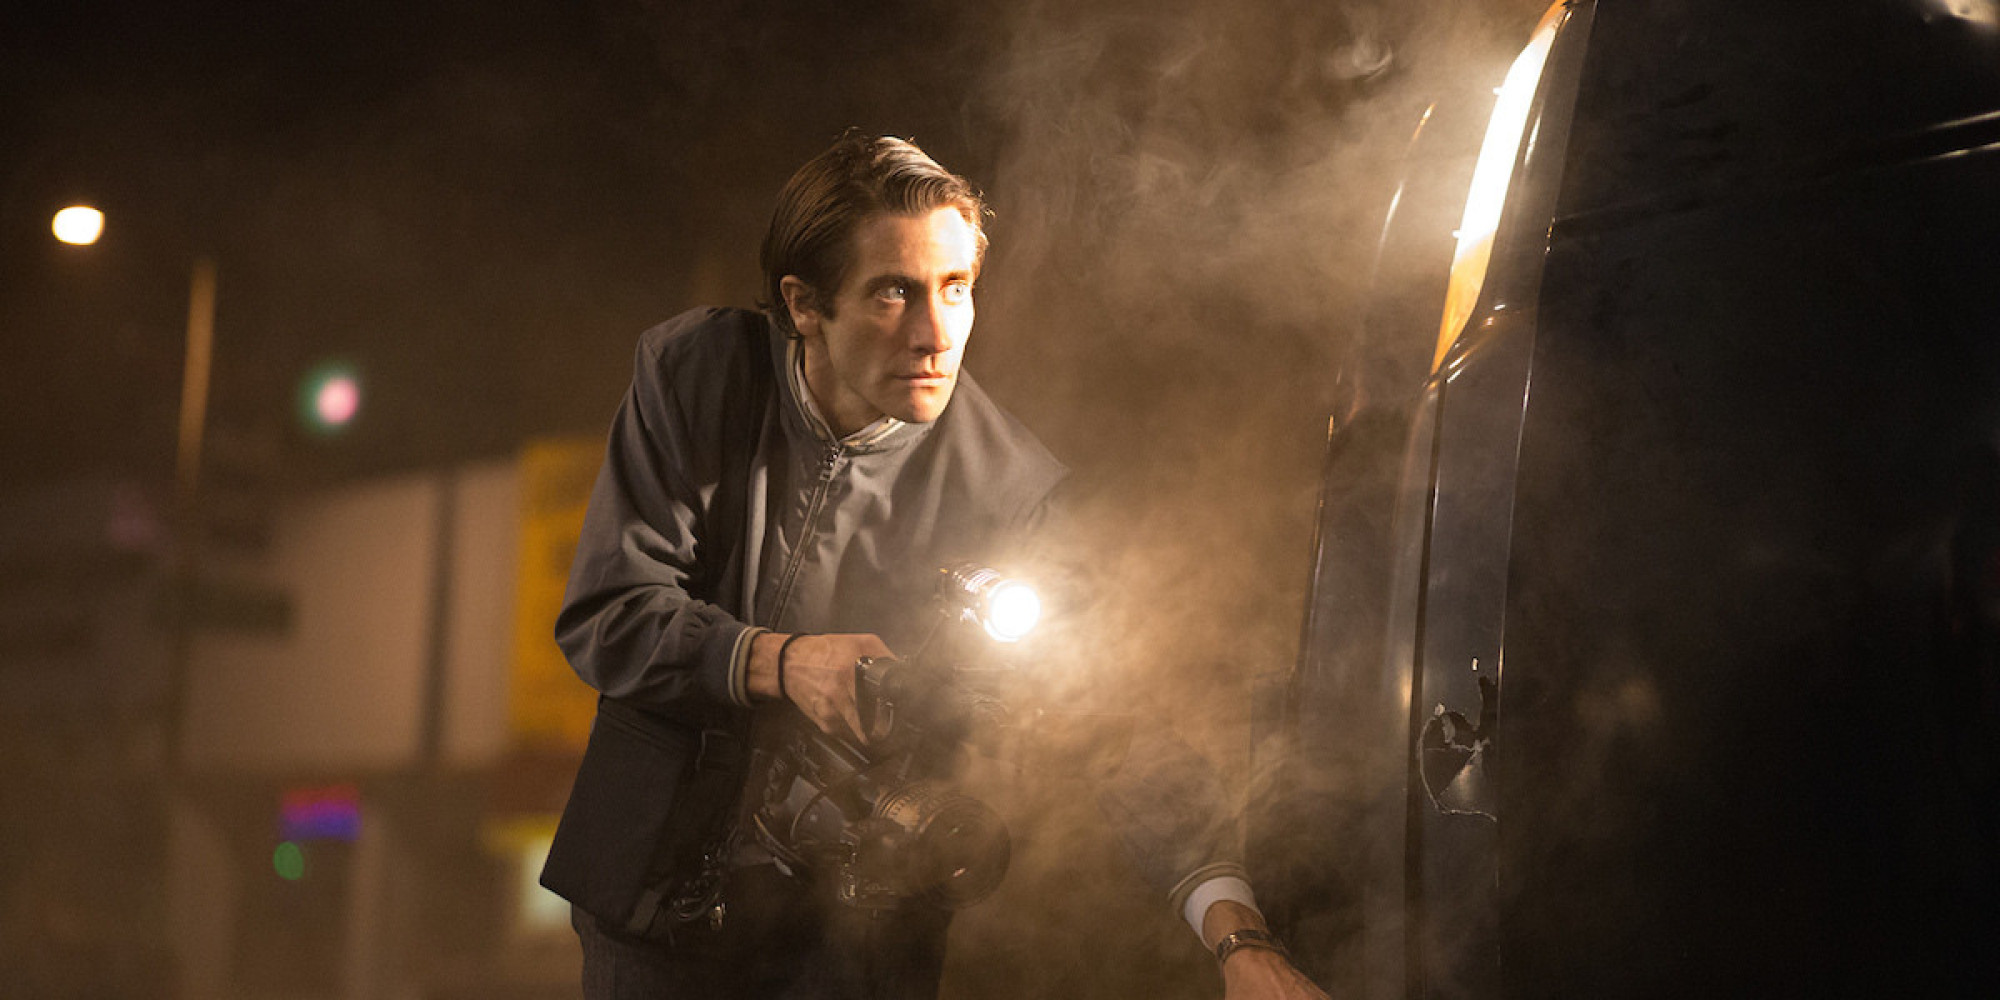 Jake Gyllenhaal creeps us all out as Louis Bloom in Nightcrawler.